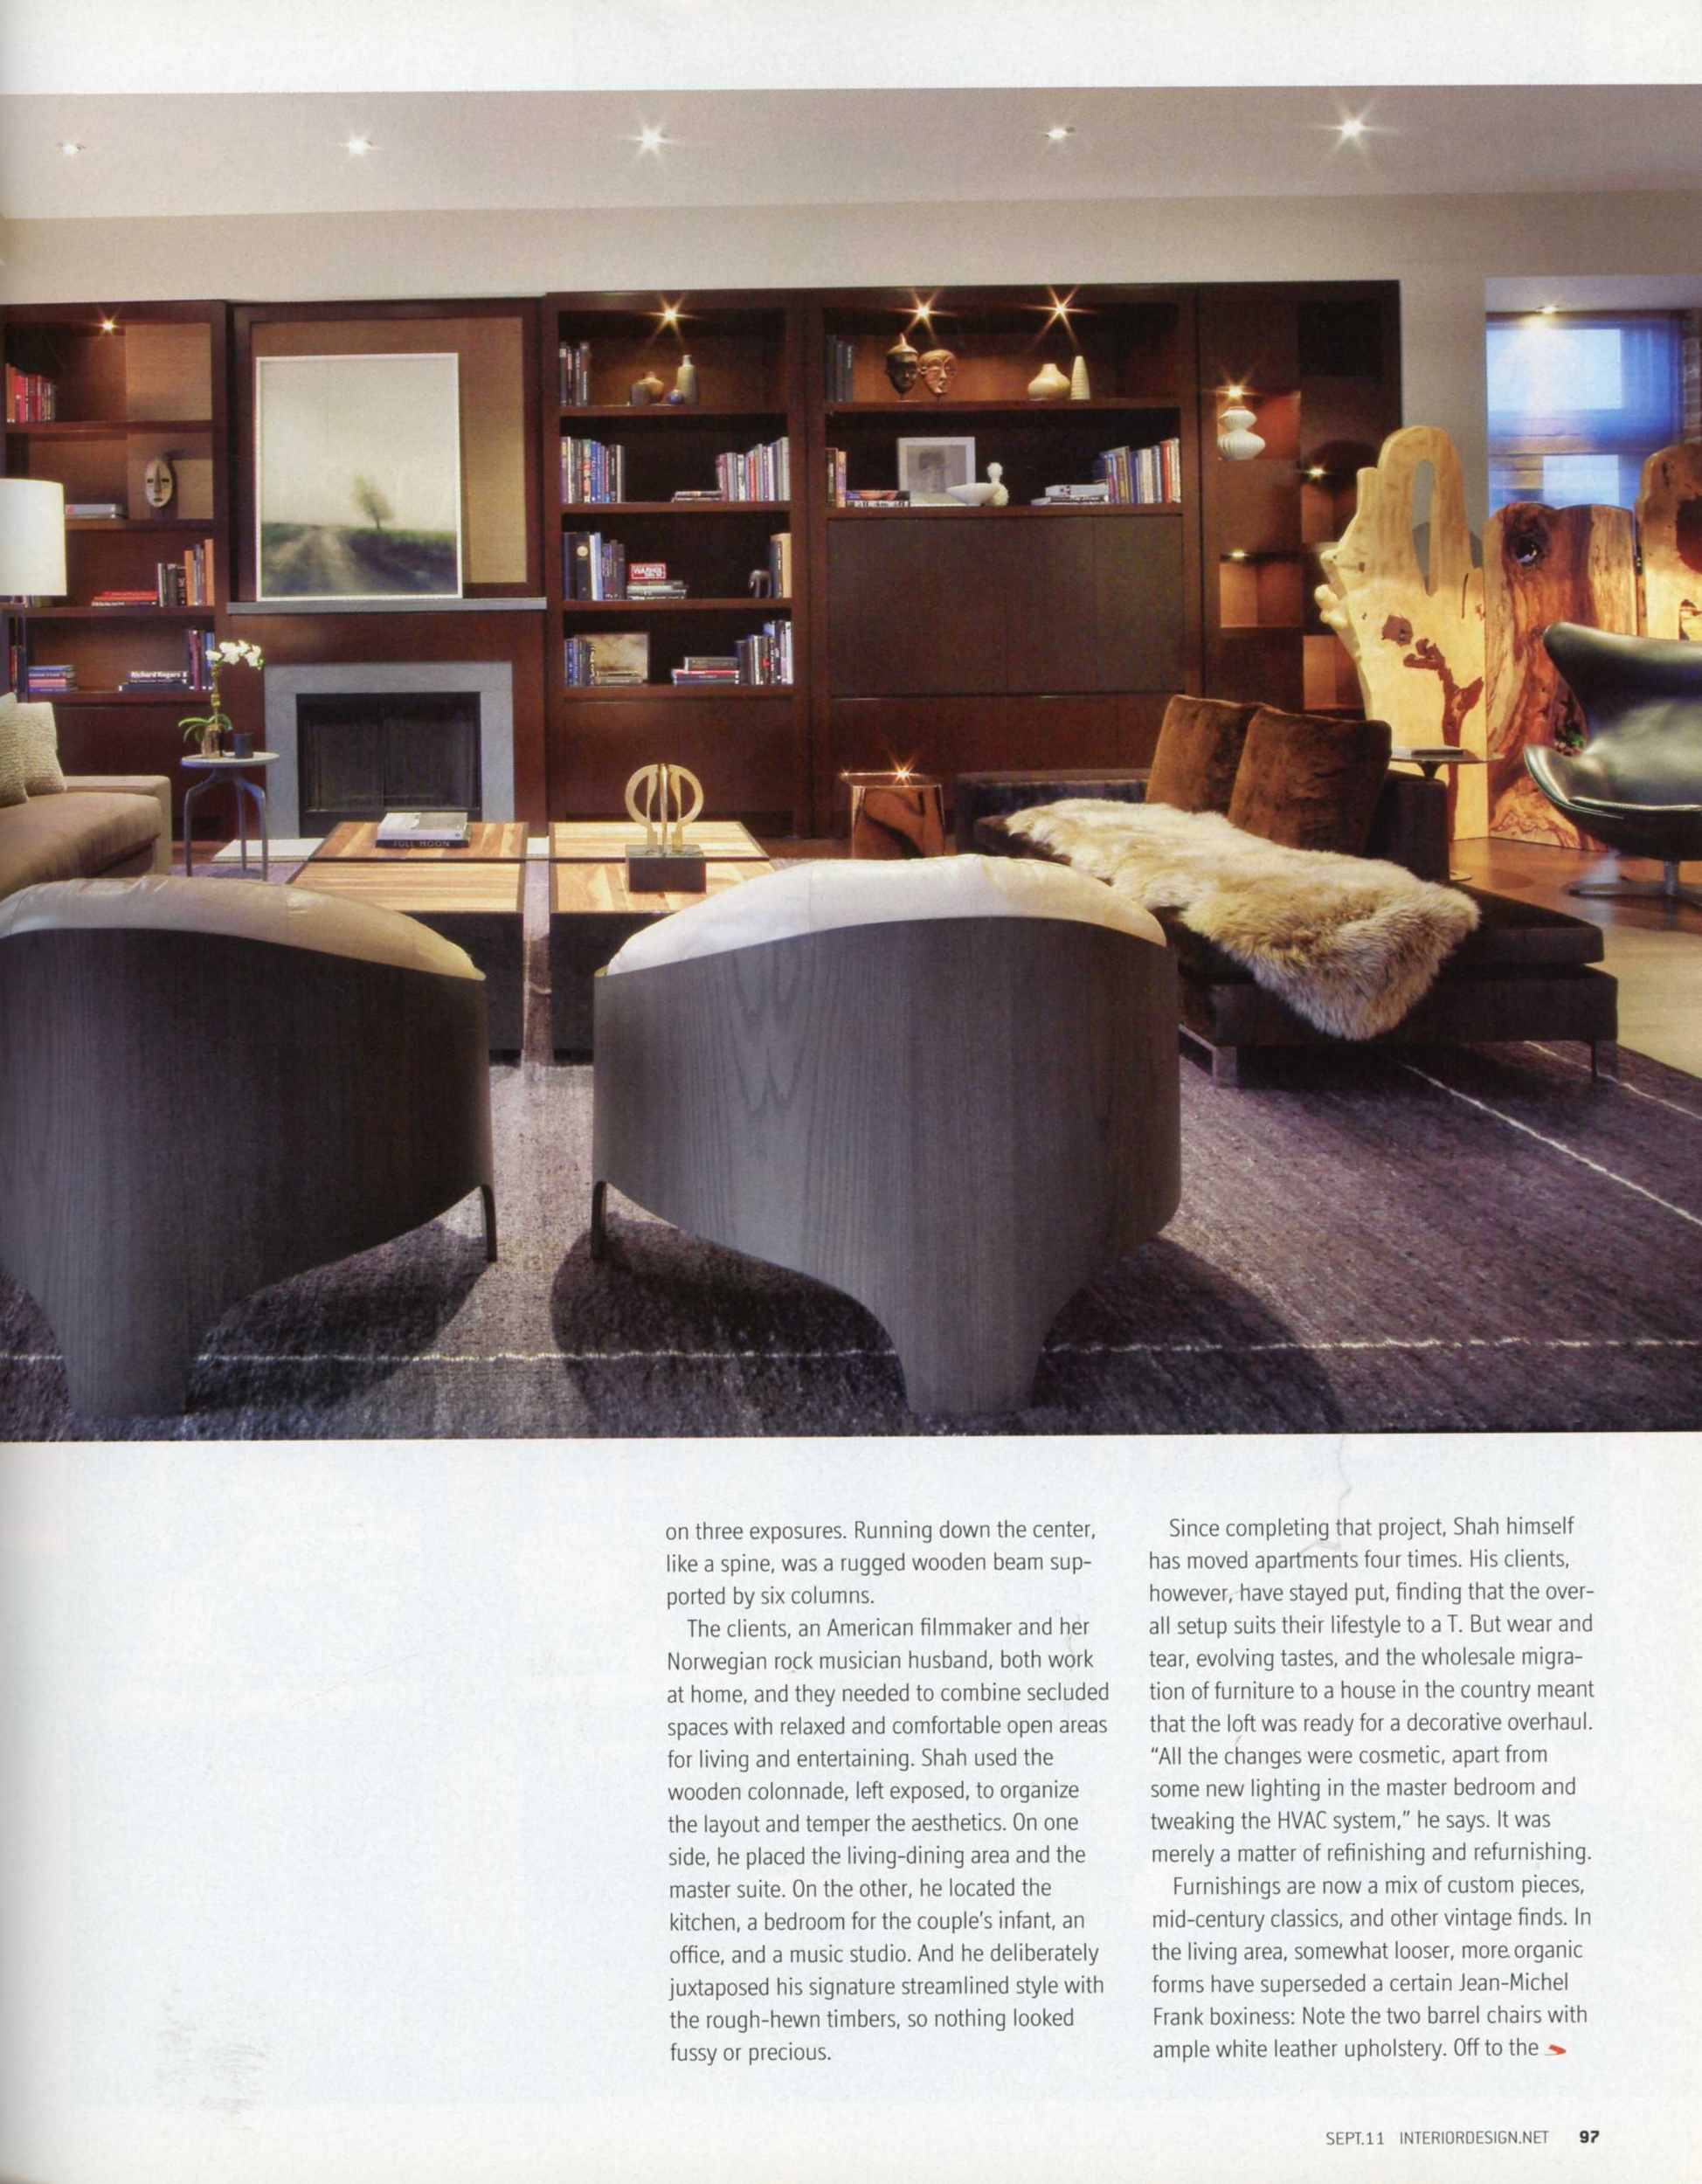 Interior Design_Nov 11_Soho Apt_Full Article_Page_5.jpg